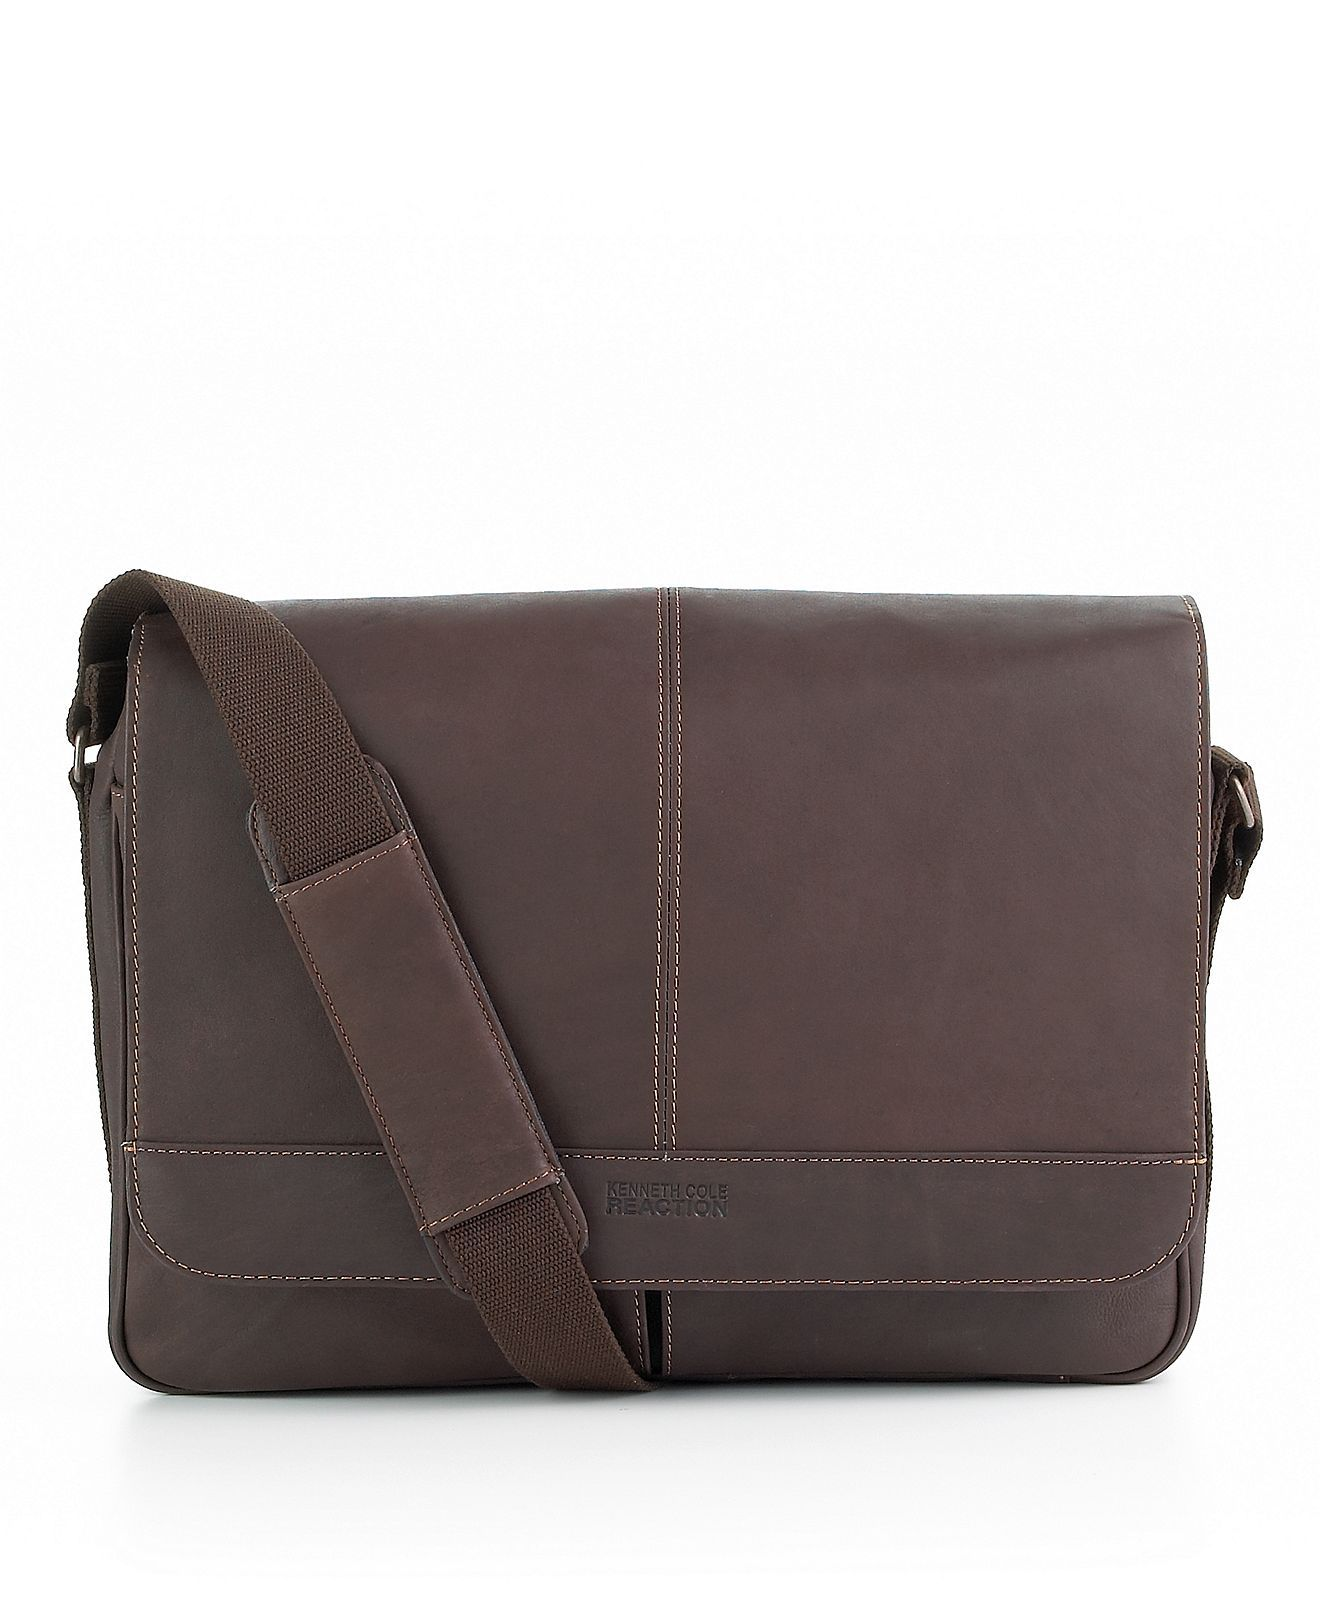 Kenneth Cole Reaction Columbia Leather Single Gusset Messenger Bag - Mens  Men s Bags   Backpacks - Macy s 9be677a72c